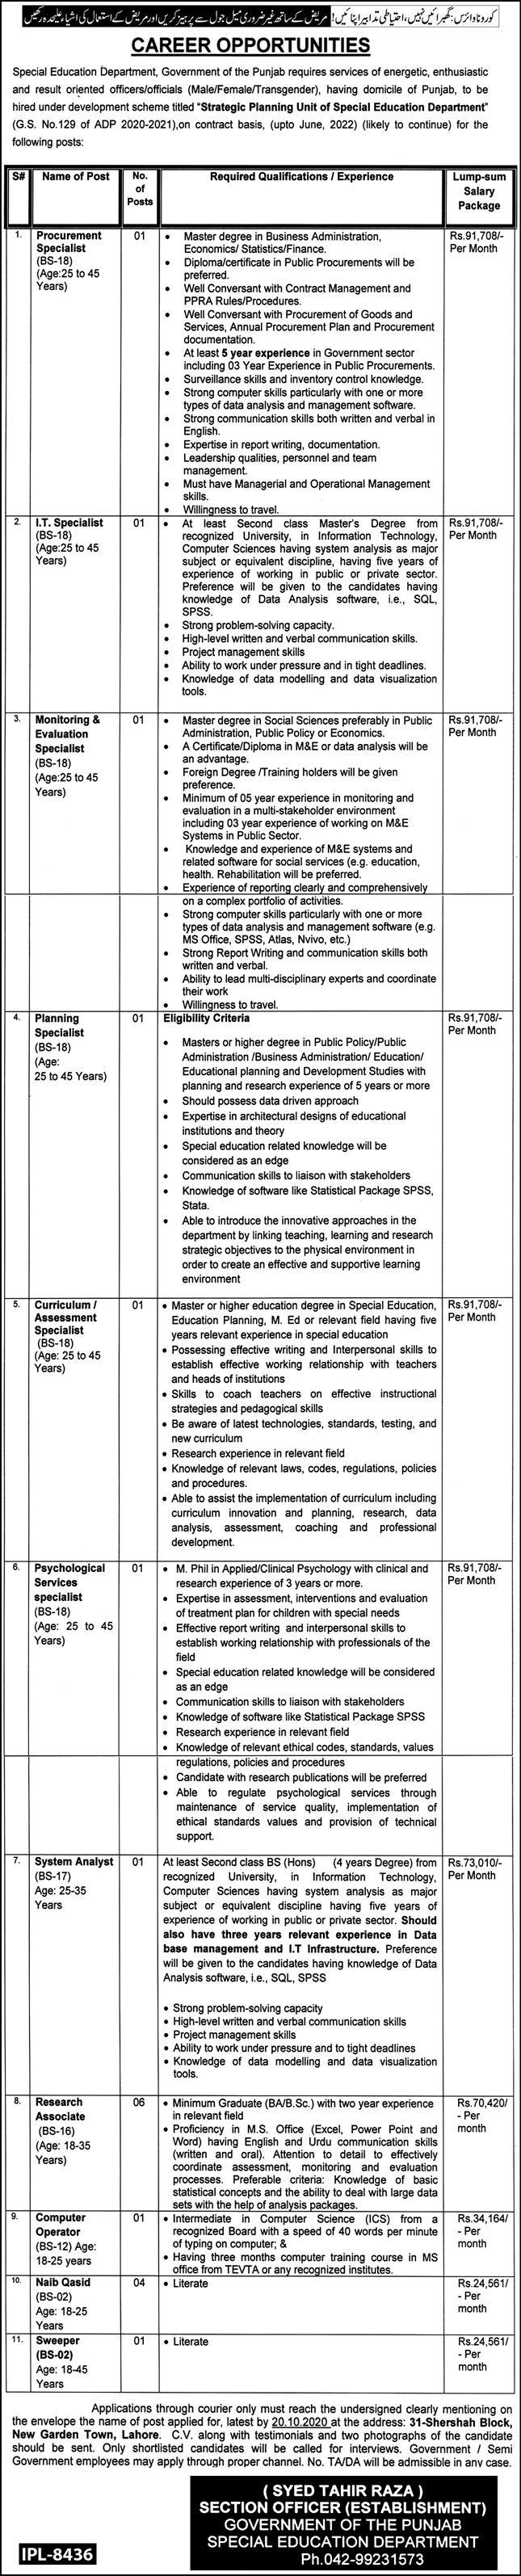 Special Education Department Government of Punjab Latest Jobs For Teaching or Non Teaching Staff Vacancies in Pakistan